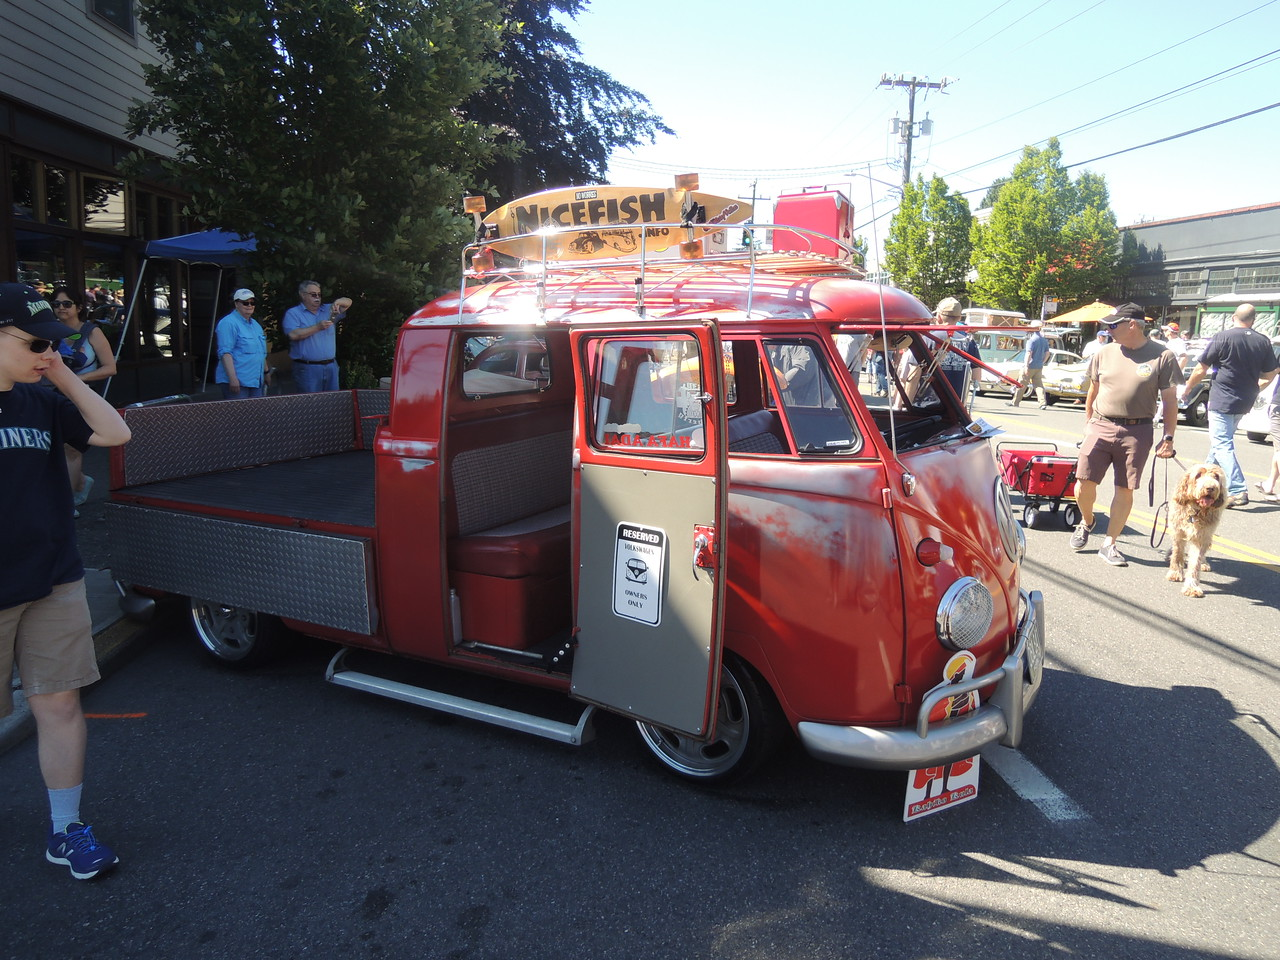 About a 1960 VW Combi with crew cab and drop sides on the bed.  Very cool!  You could travel far, very slowly, in this rig.